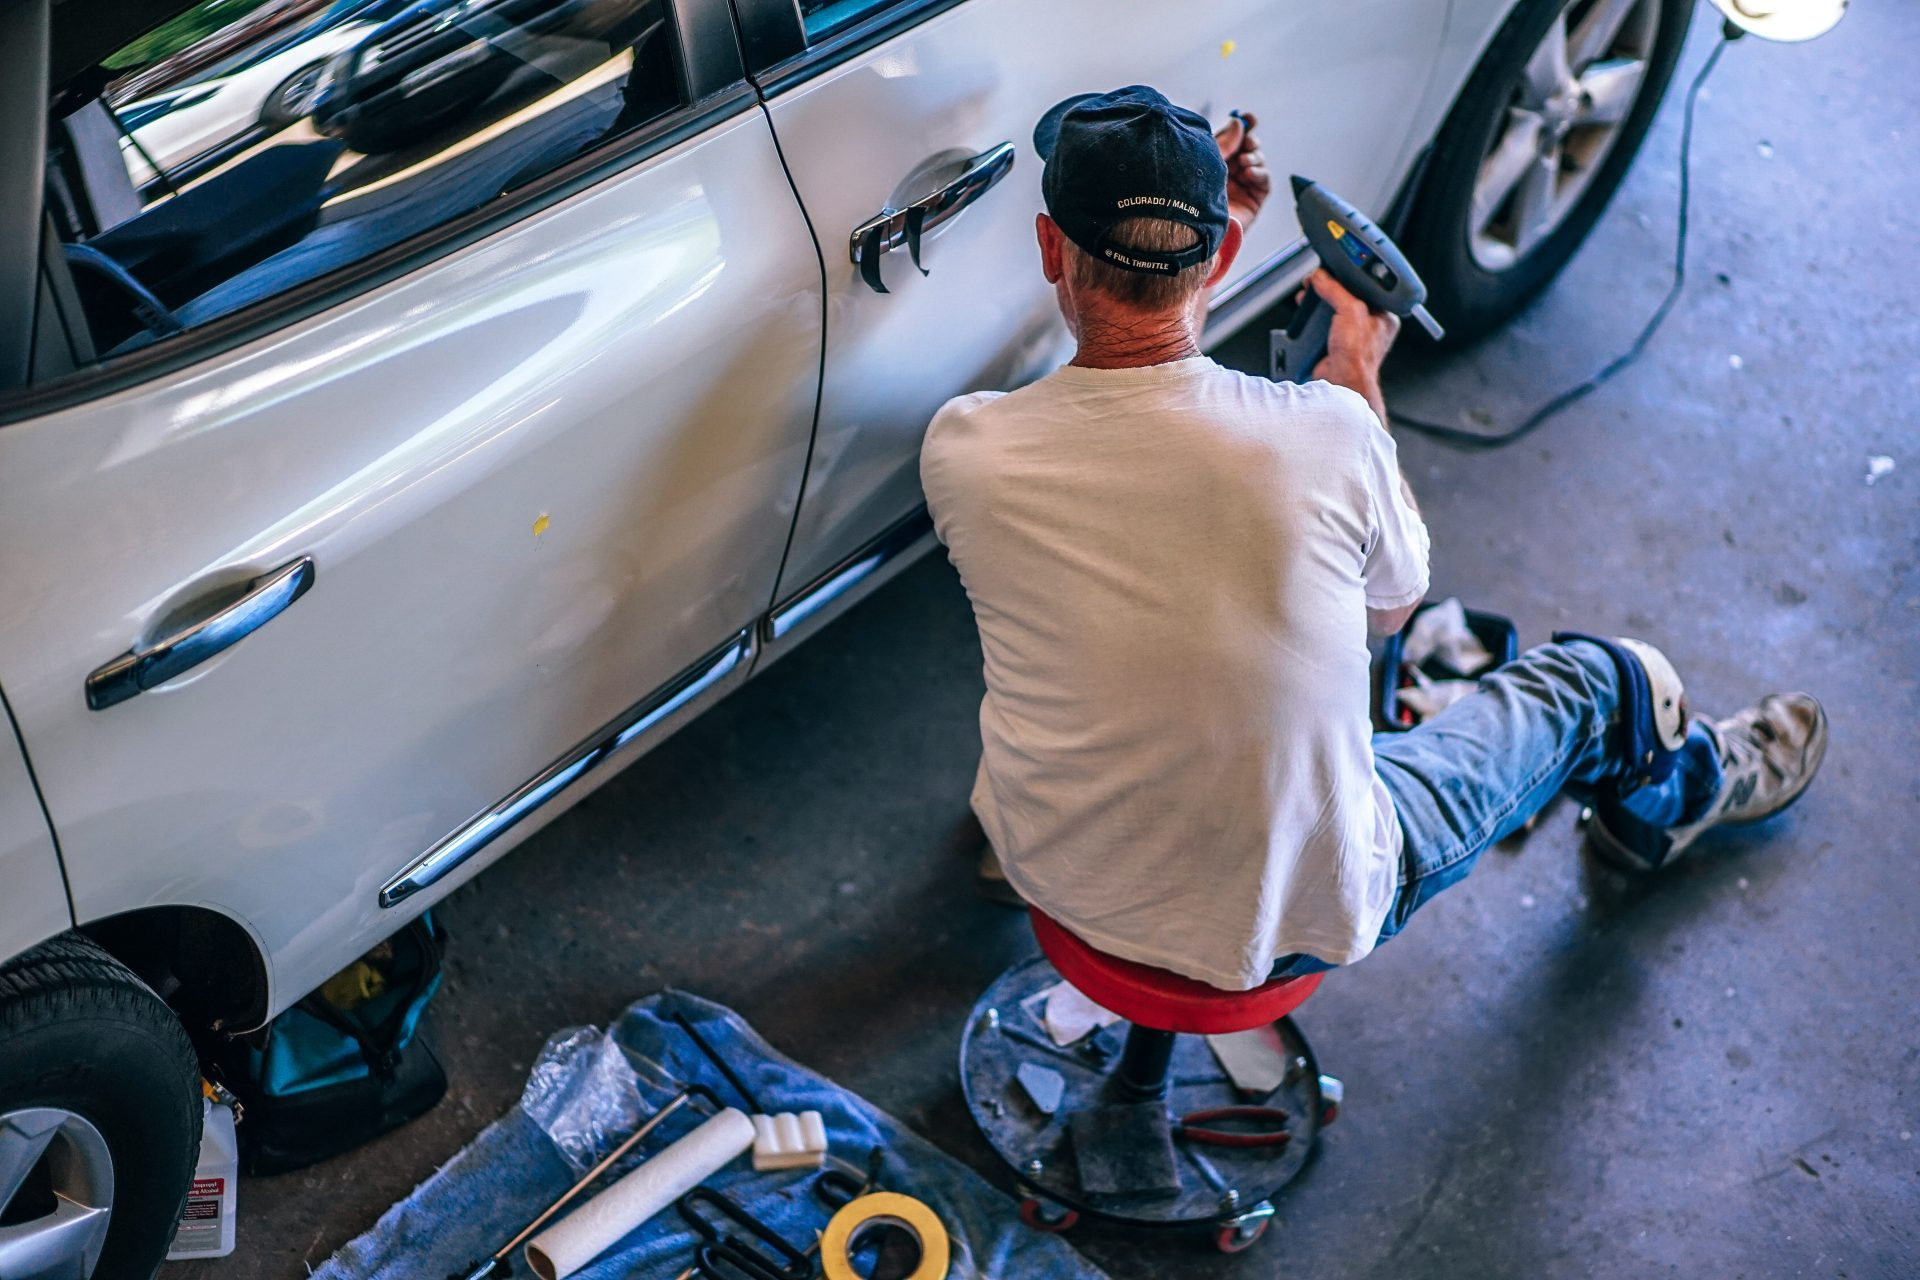 guy working in an auto body shop